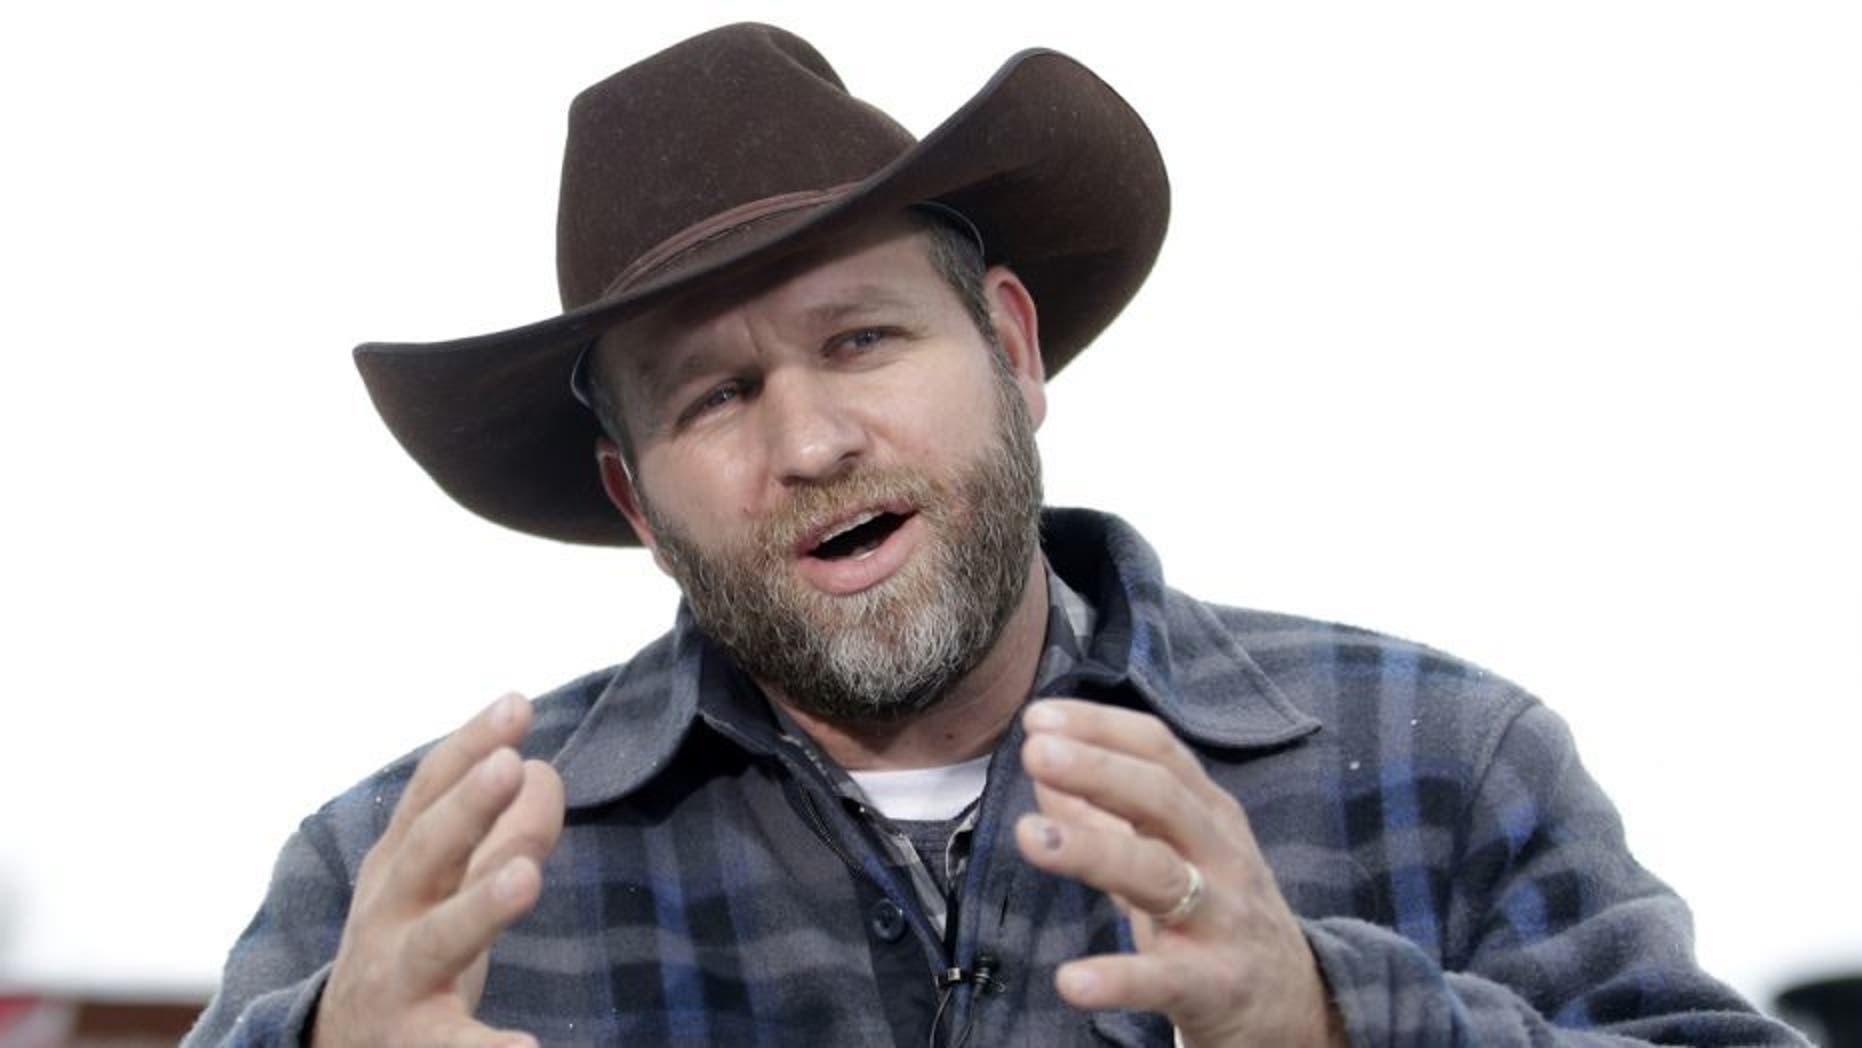 Ammon Bundy said he was leaving social media after receiving backlash from his Trump criticism.